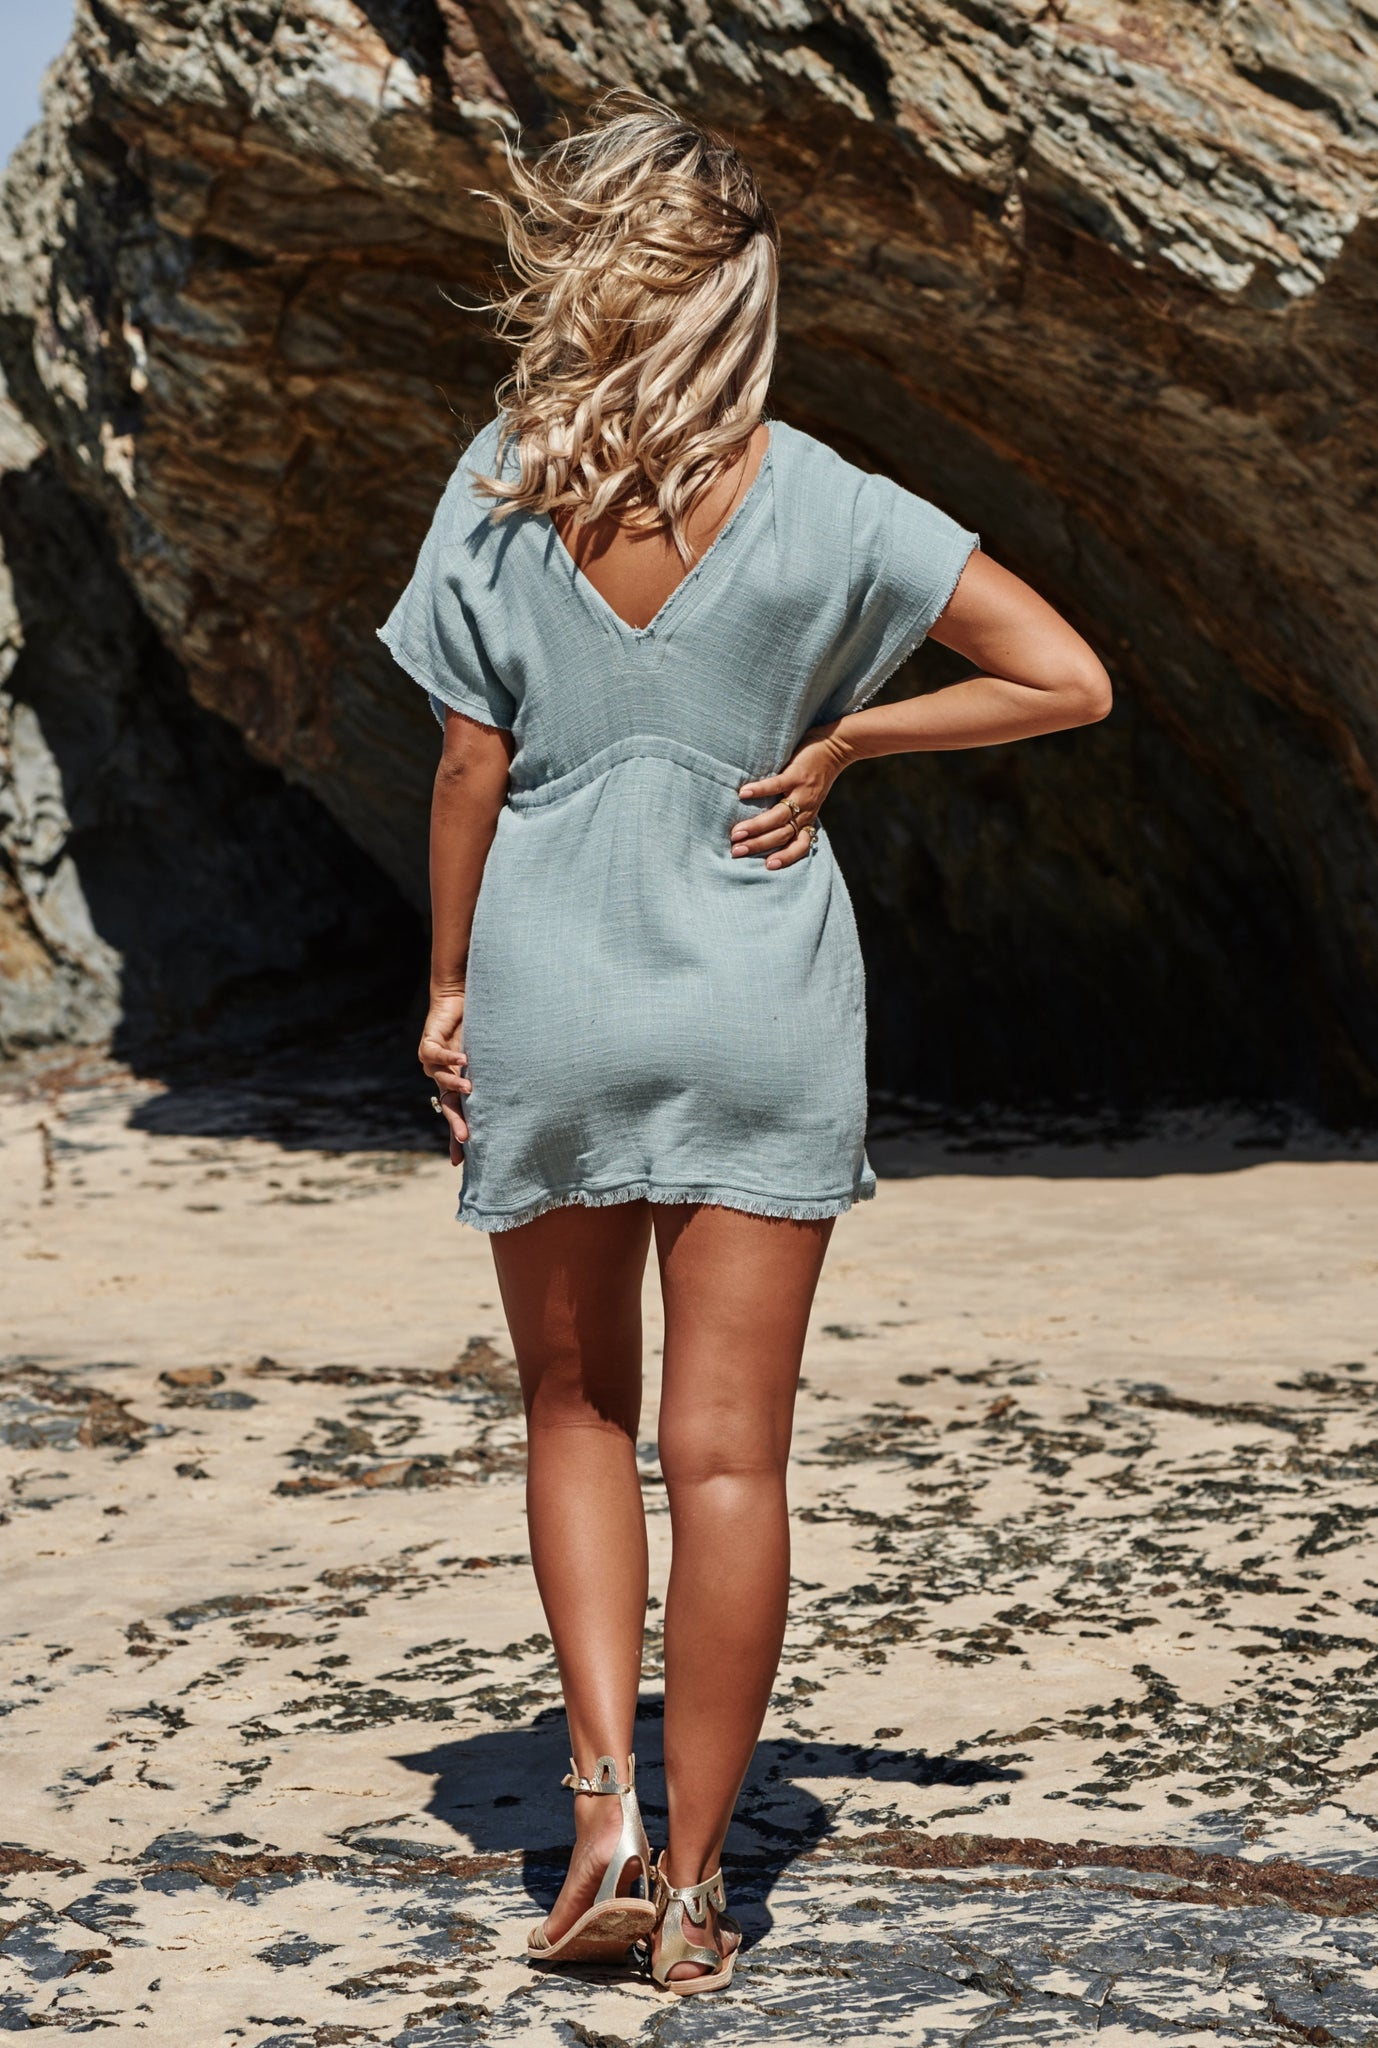 Akosee Pale Blue Beach Cover-up Kaftan Dress